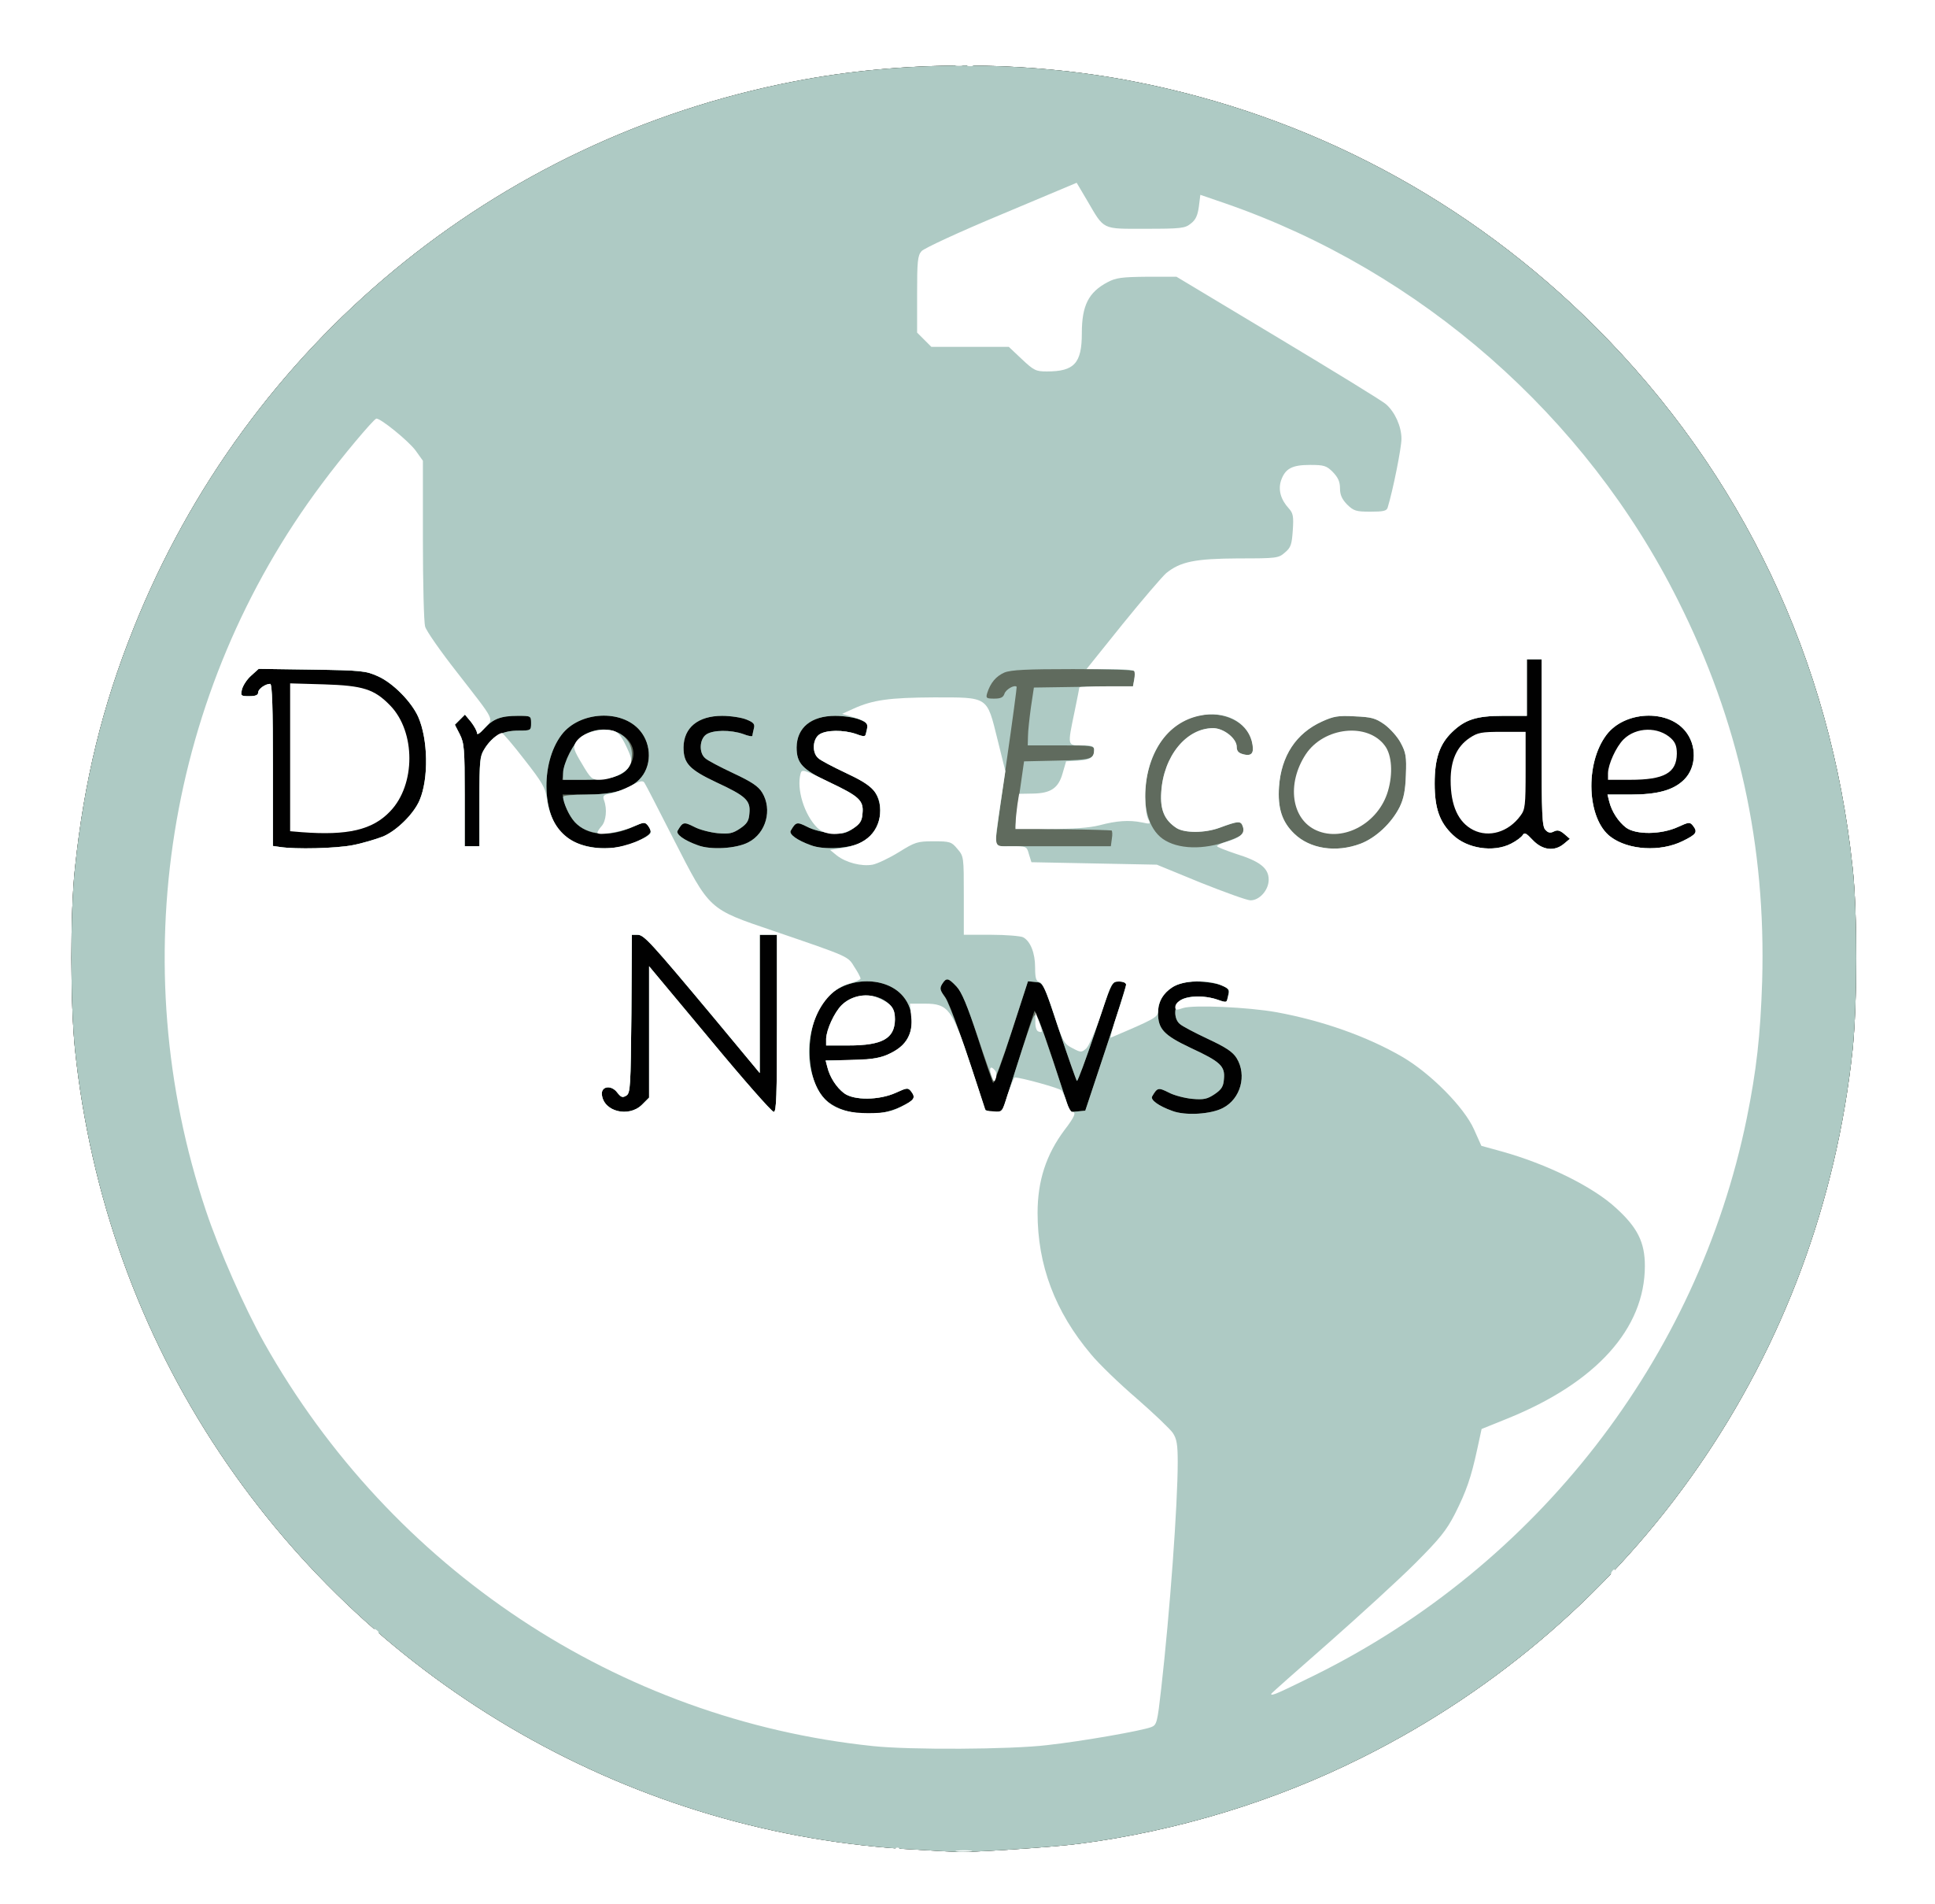 Icona-Dress-ECOde-news-2-SF-copy